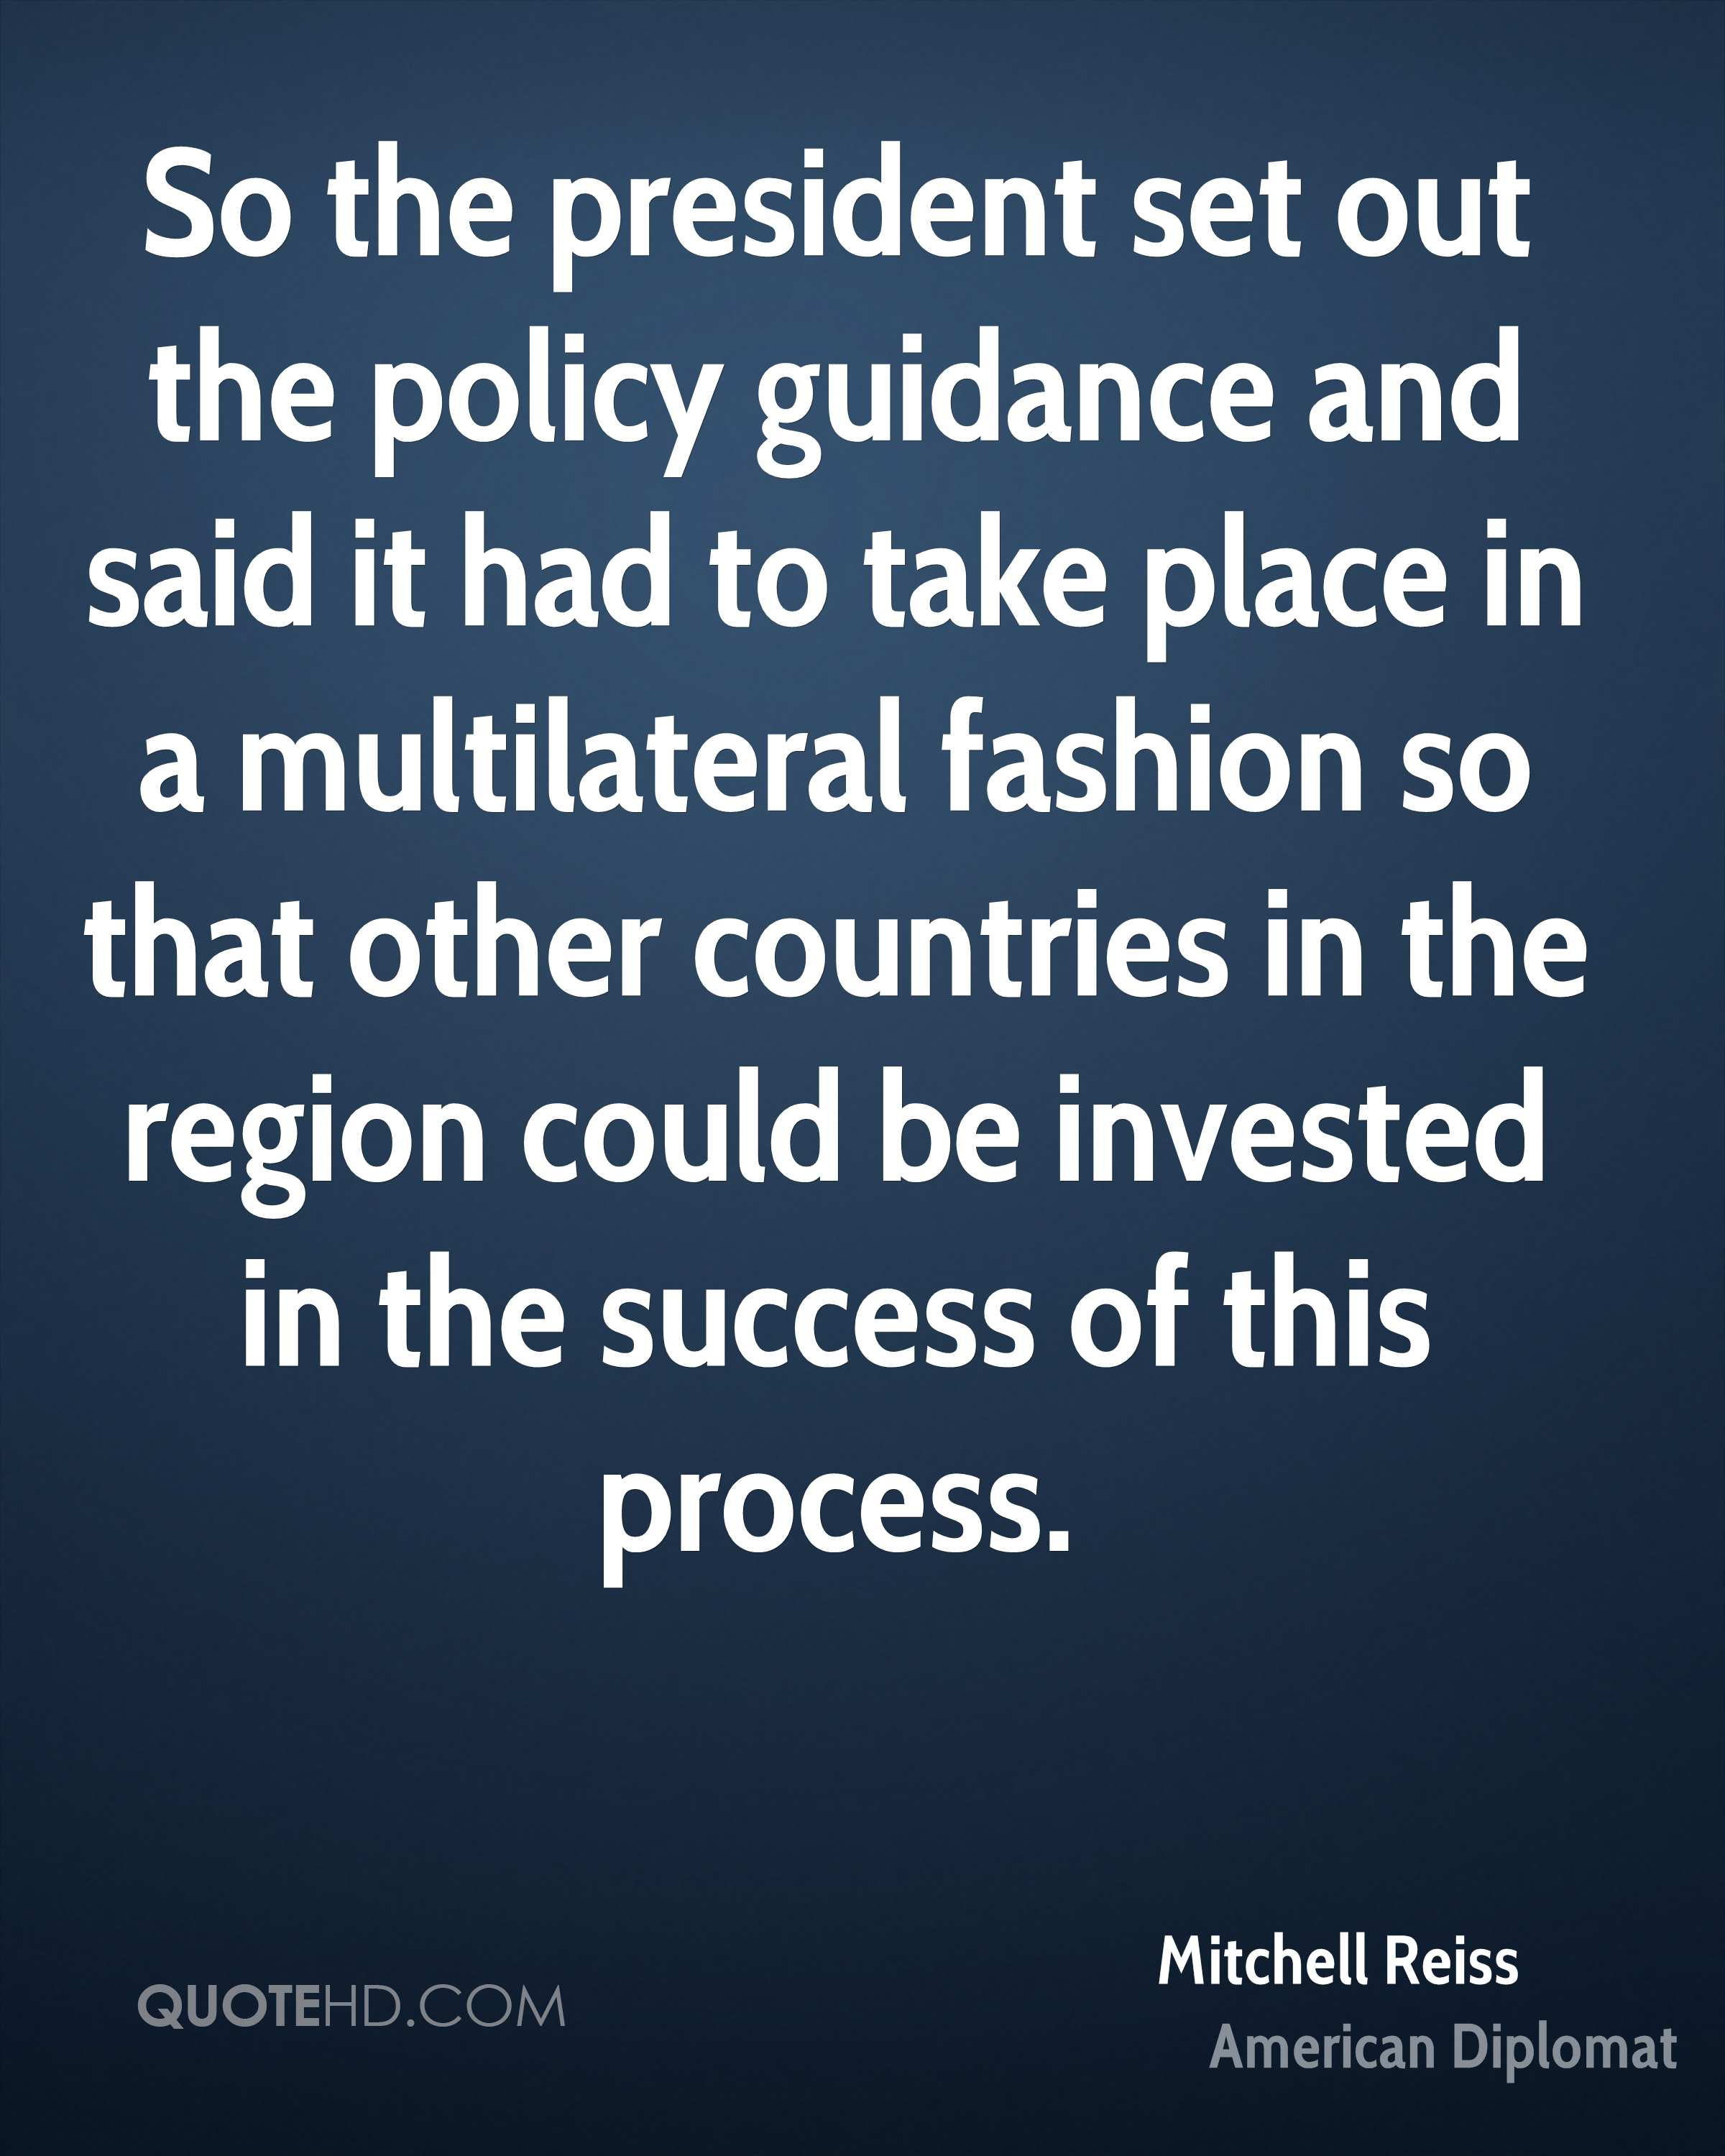 So the president set out the policy guidance and said it had to take place in a multilateral fashion so that other countries in the region could be invested in the success of this process.